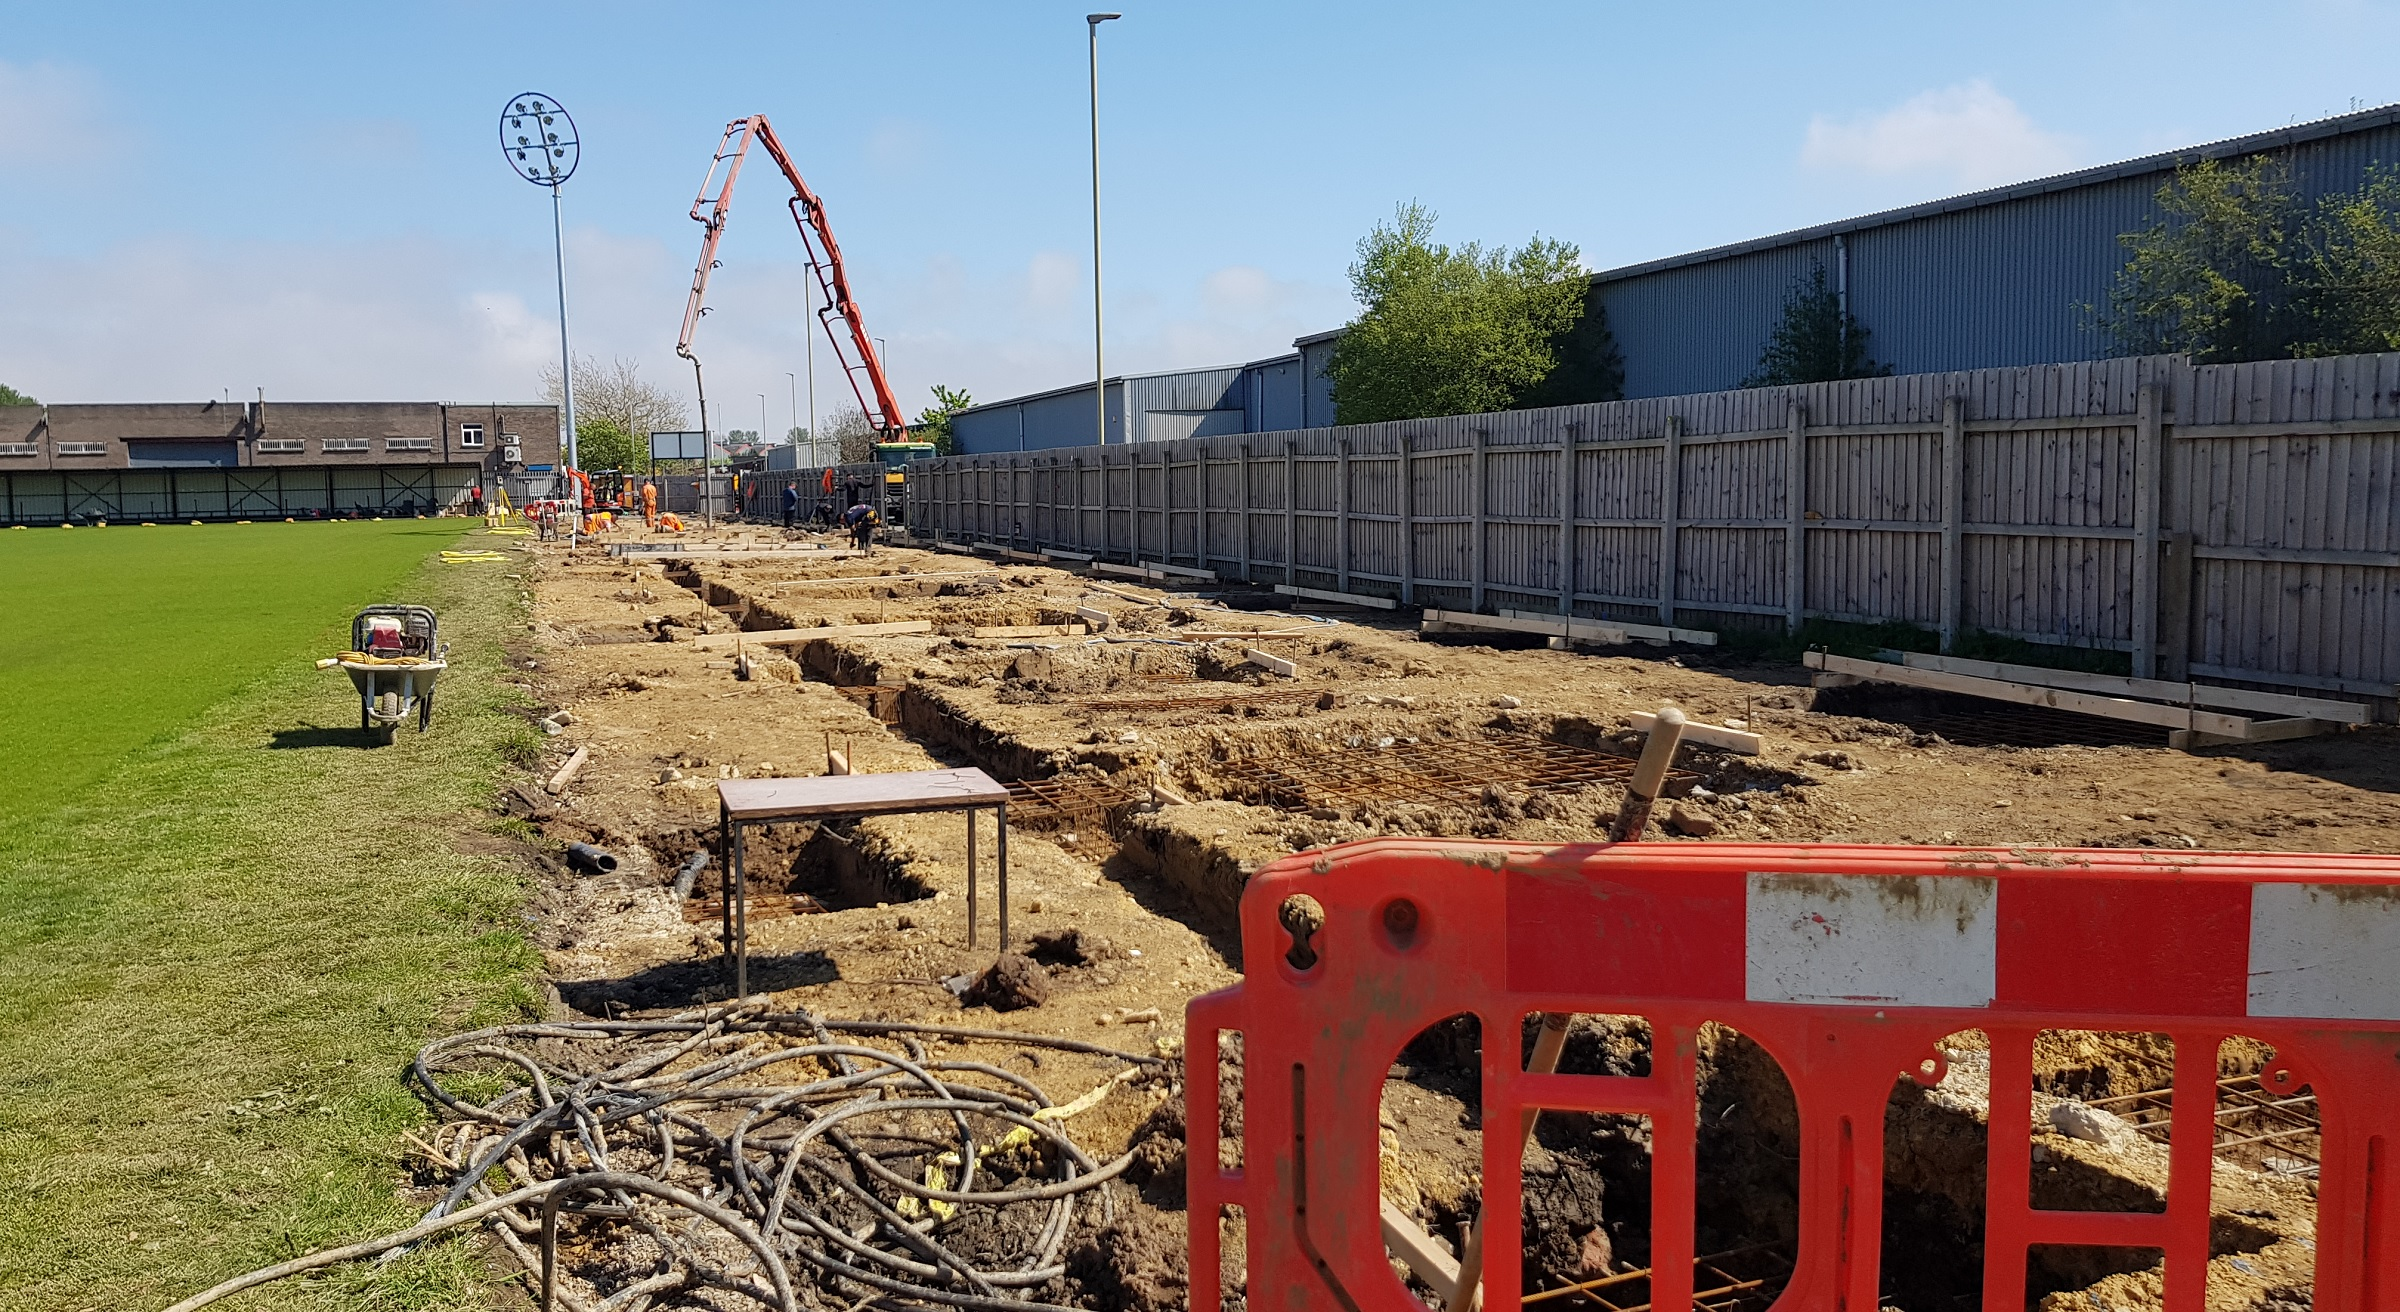 Work to begin on new stand as ground plans given green light